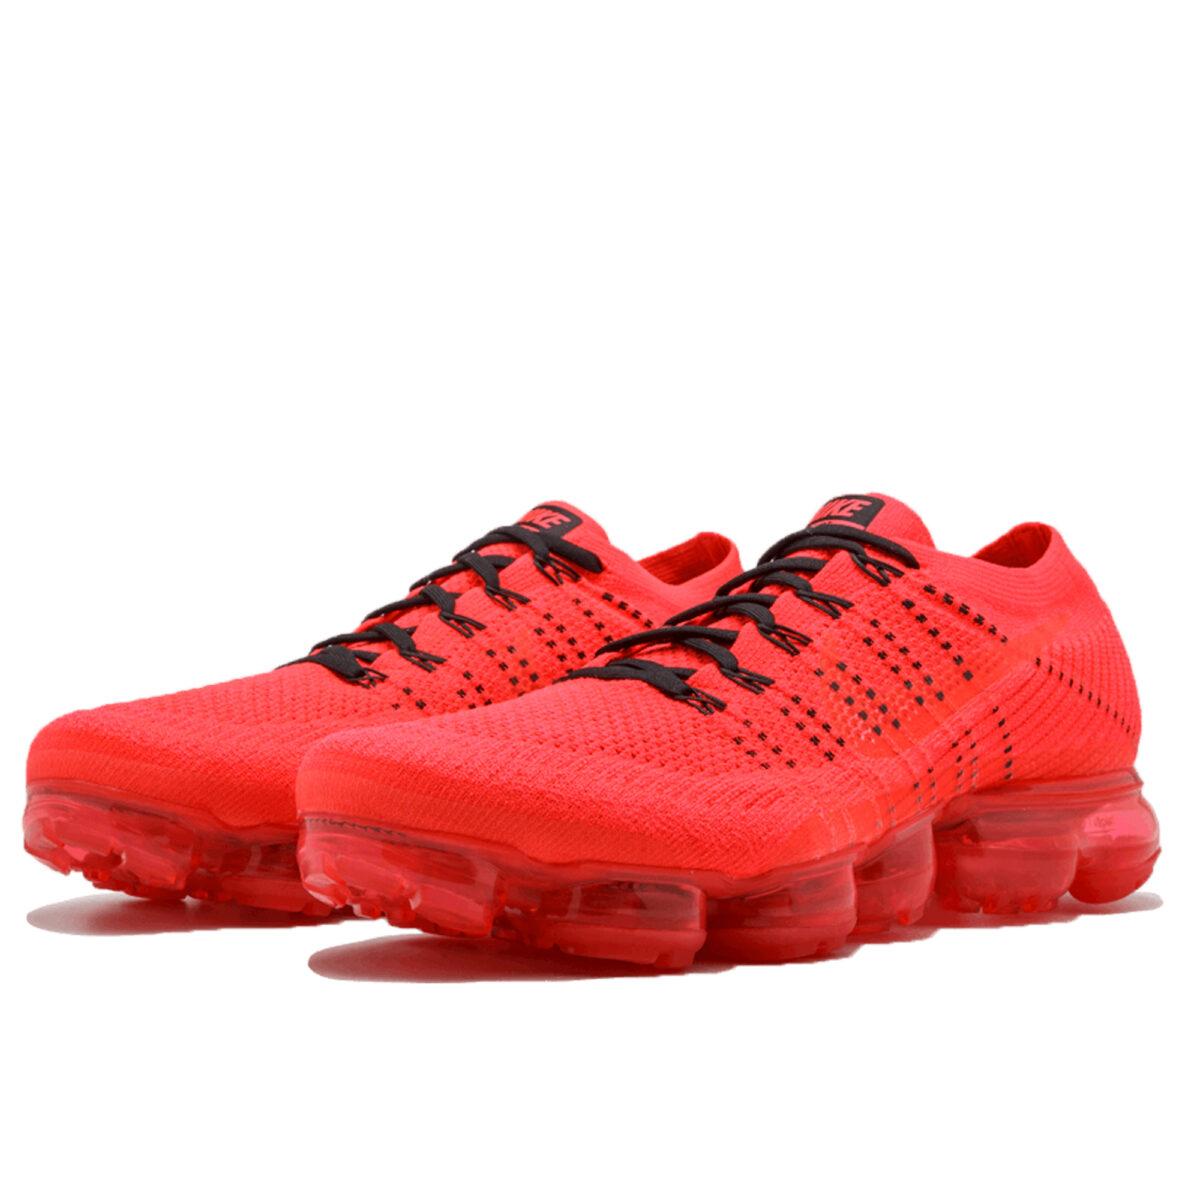 nike air vapor max fk clot red AA2241_006 купить